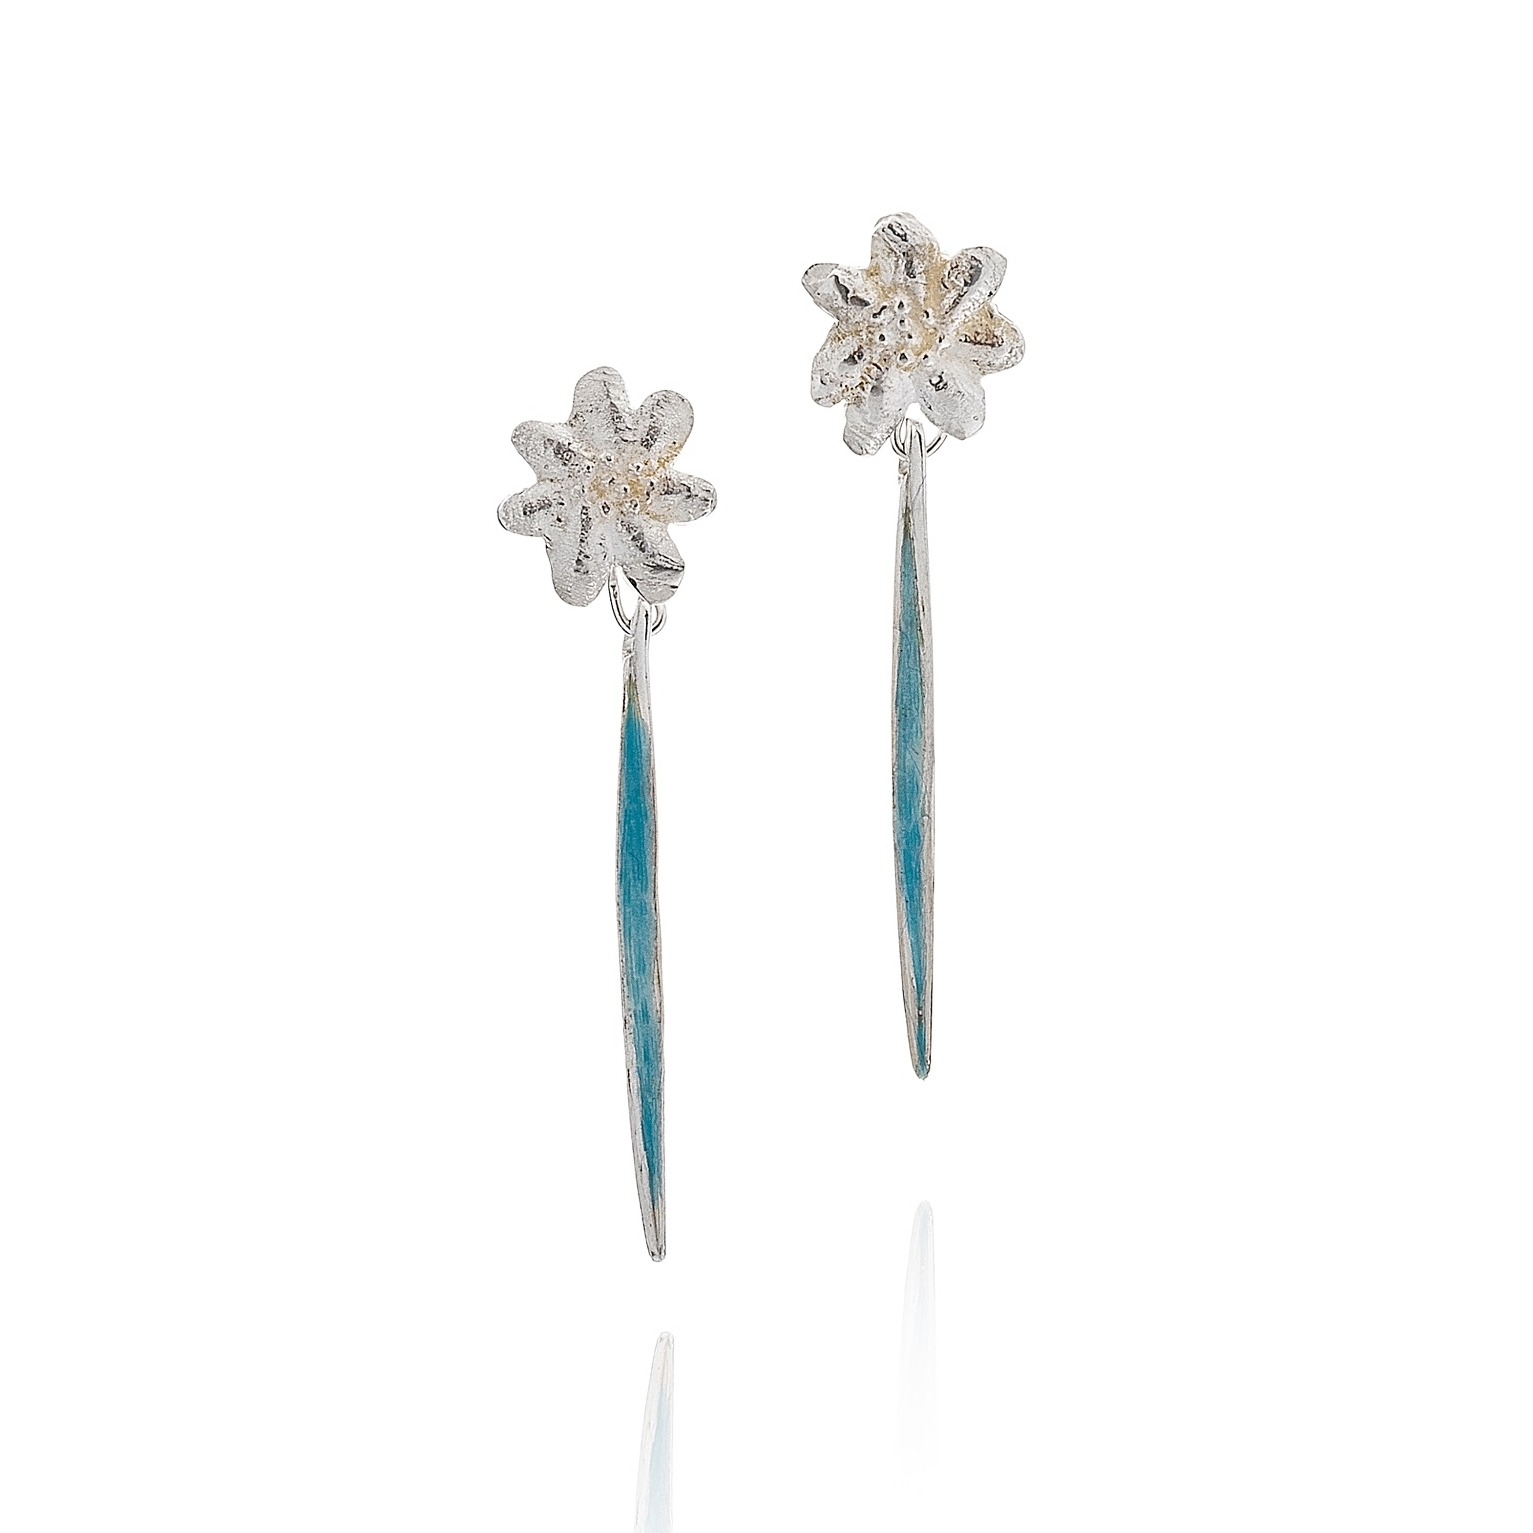 cathy-newell-price-silver-enamel-earrings